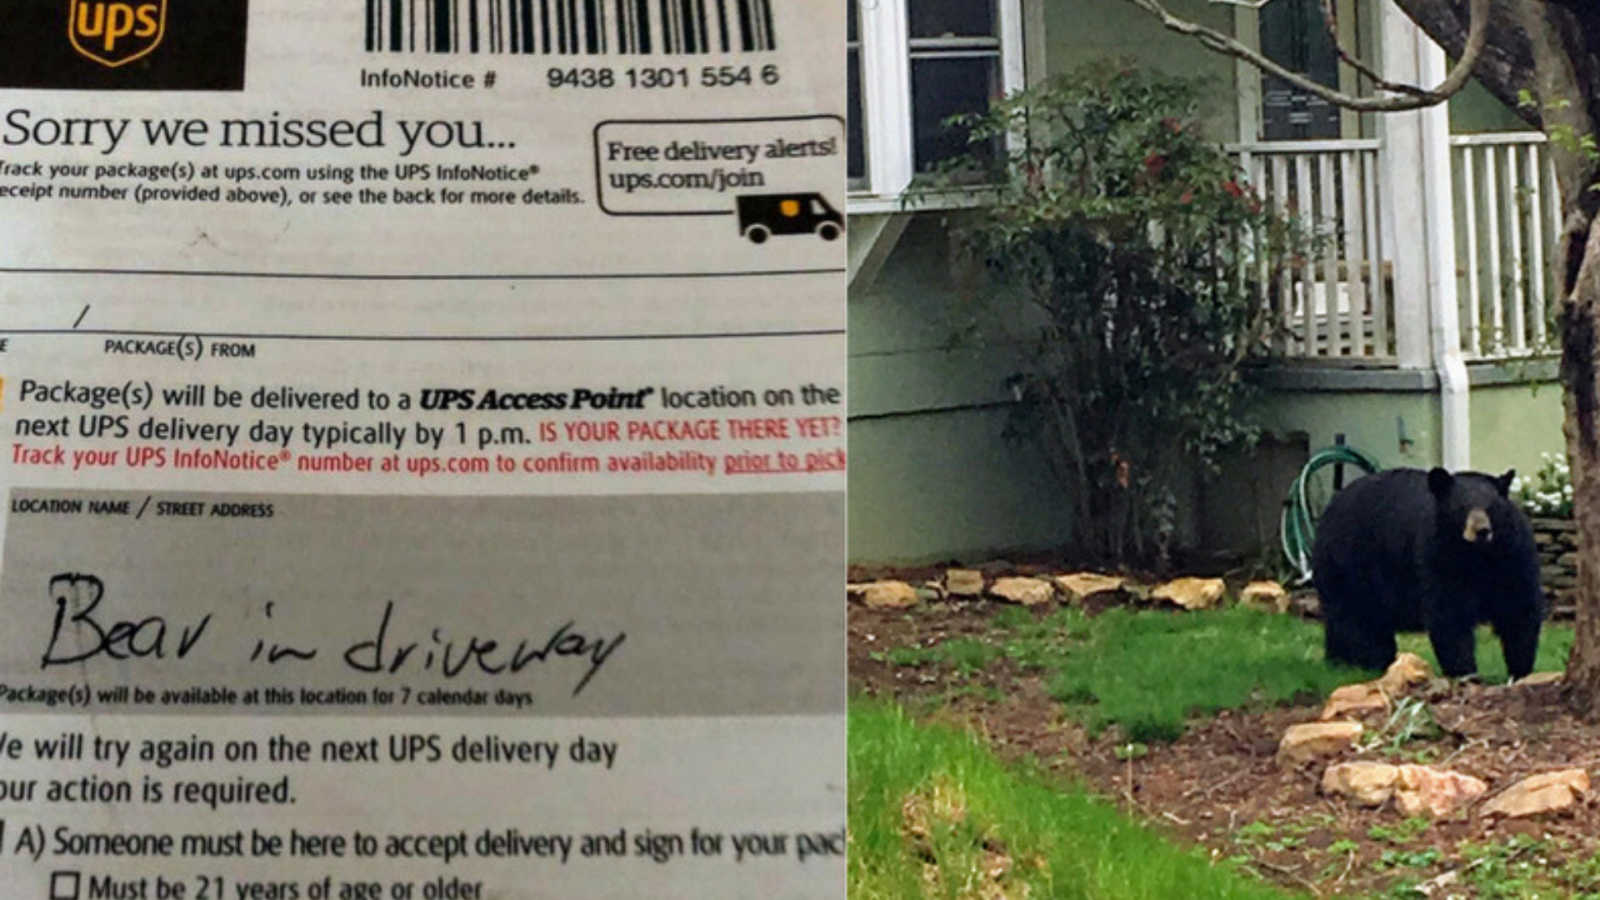 Sorry we missed you – Bear in driveway': UPS delivery